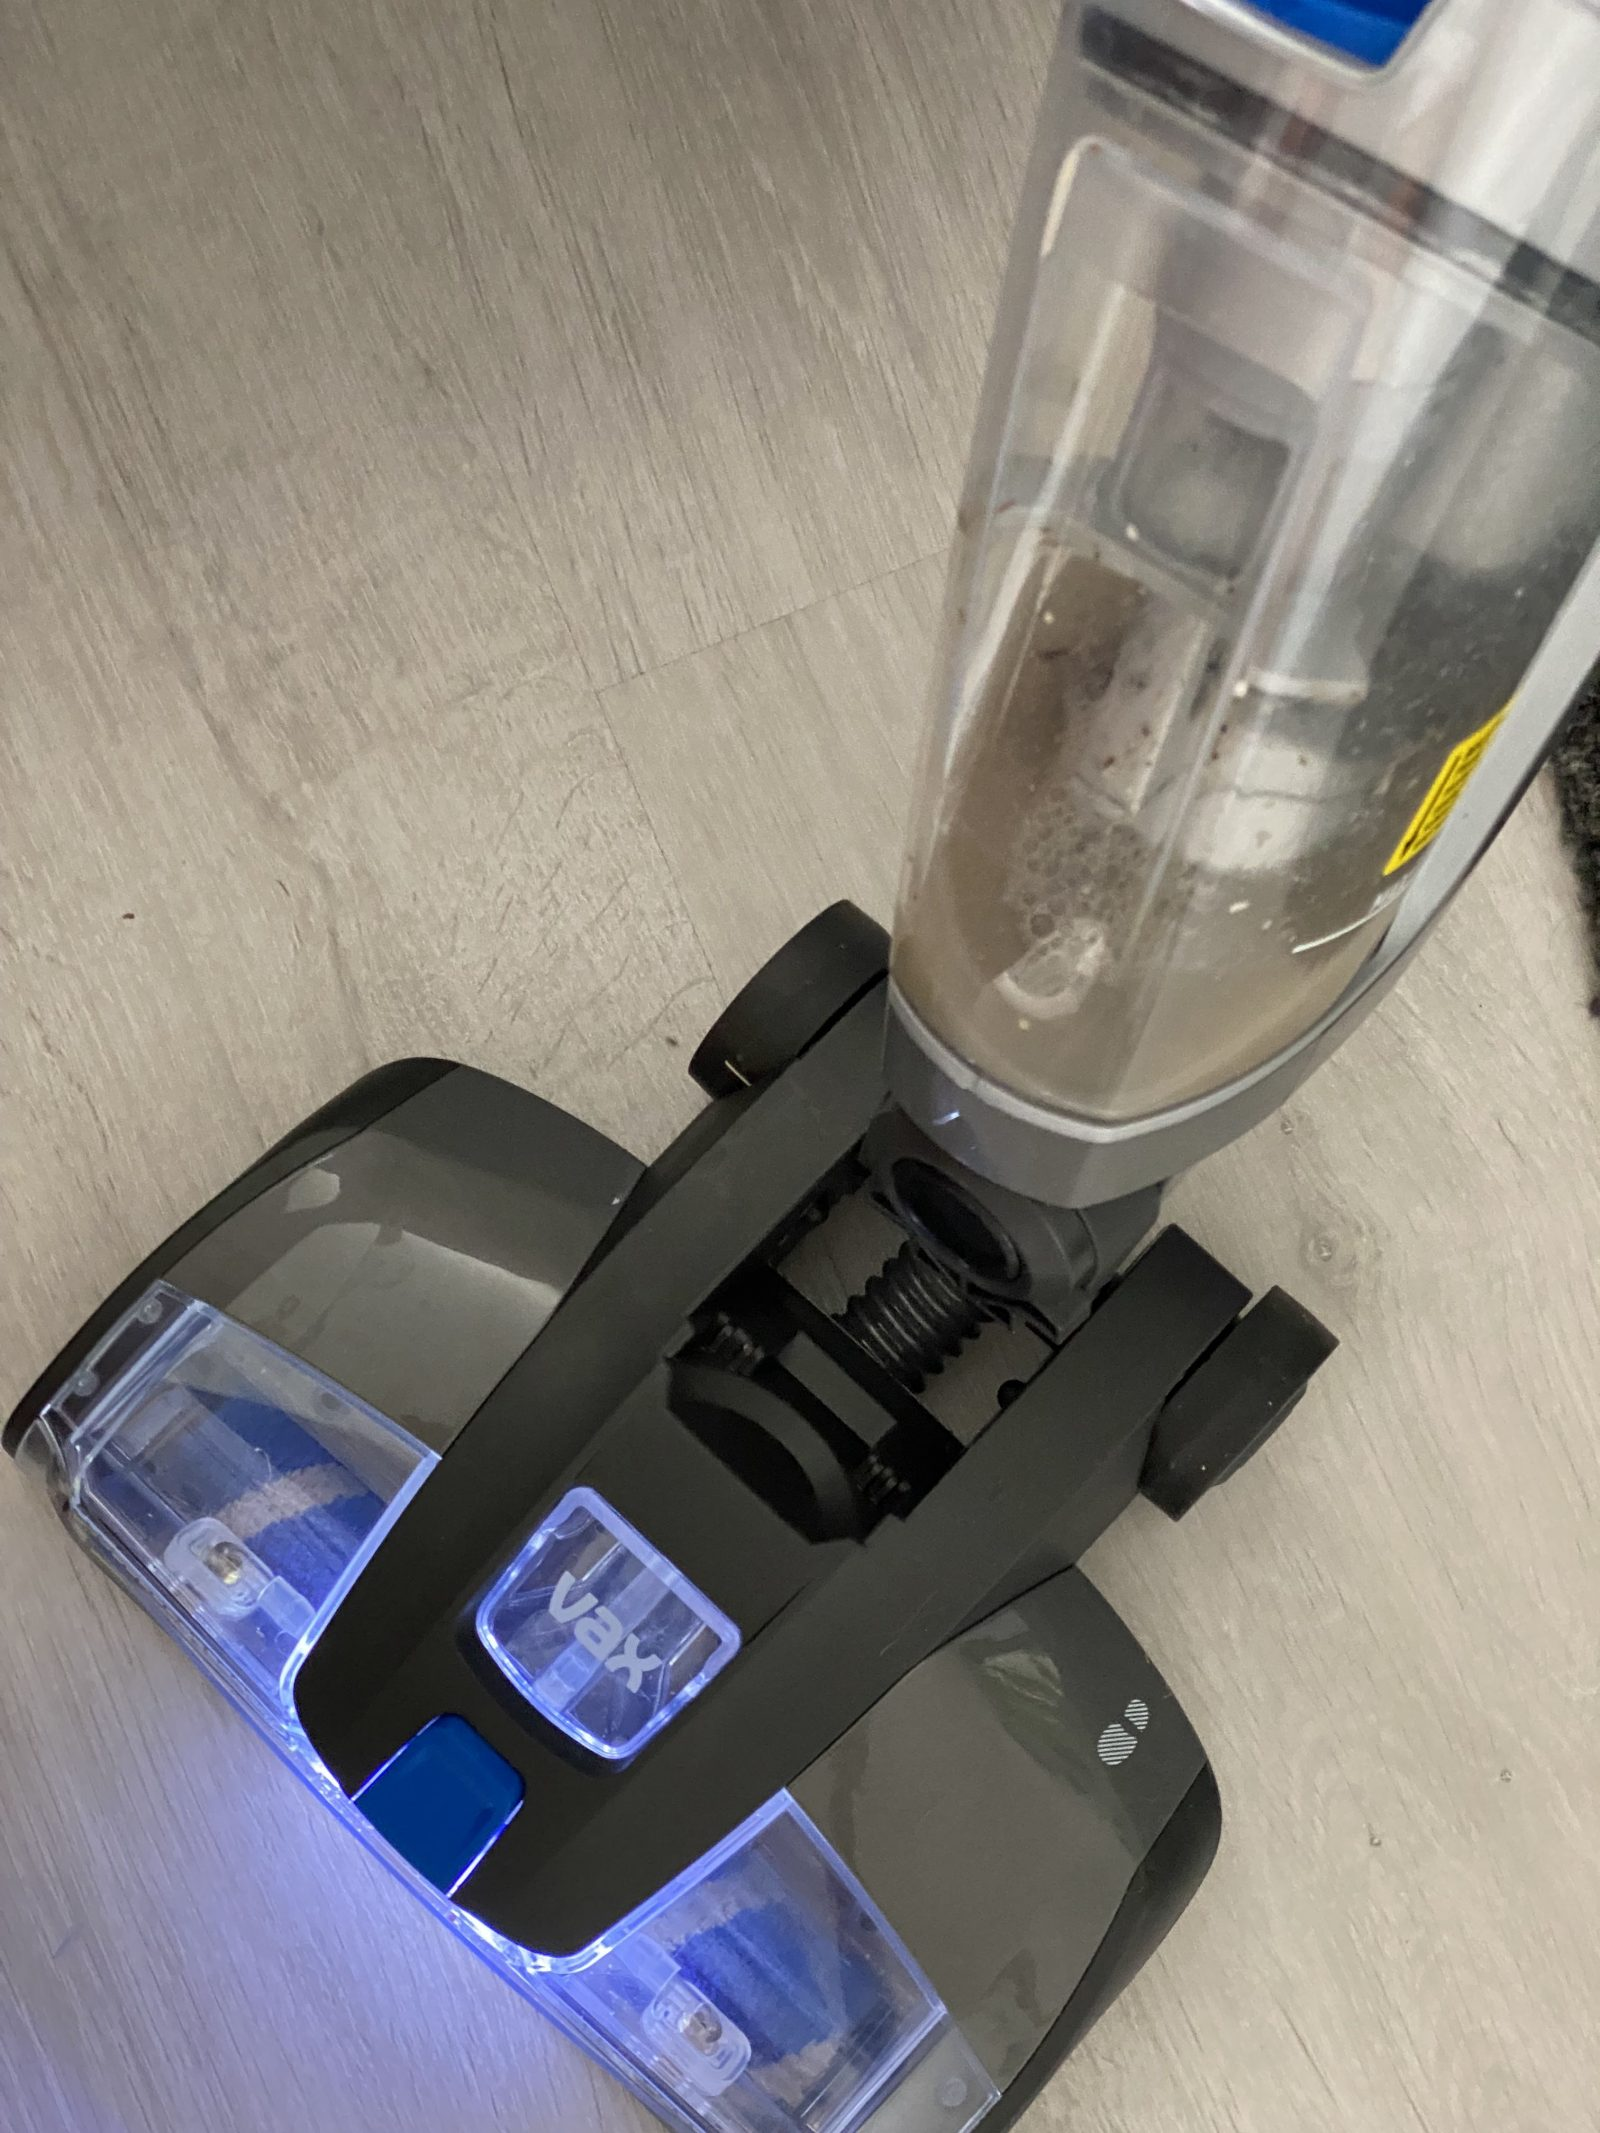 5 Vacuum Cleaners Aimed At Families Reviewed, IMG 4601 1600x2133%, daily-dad%